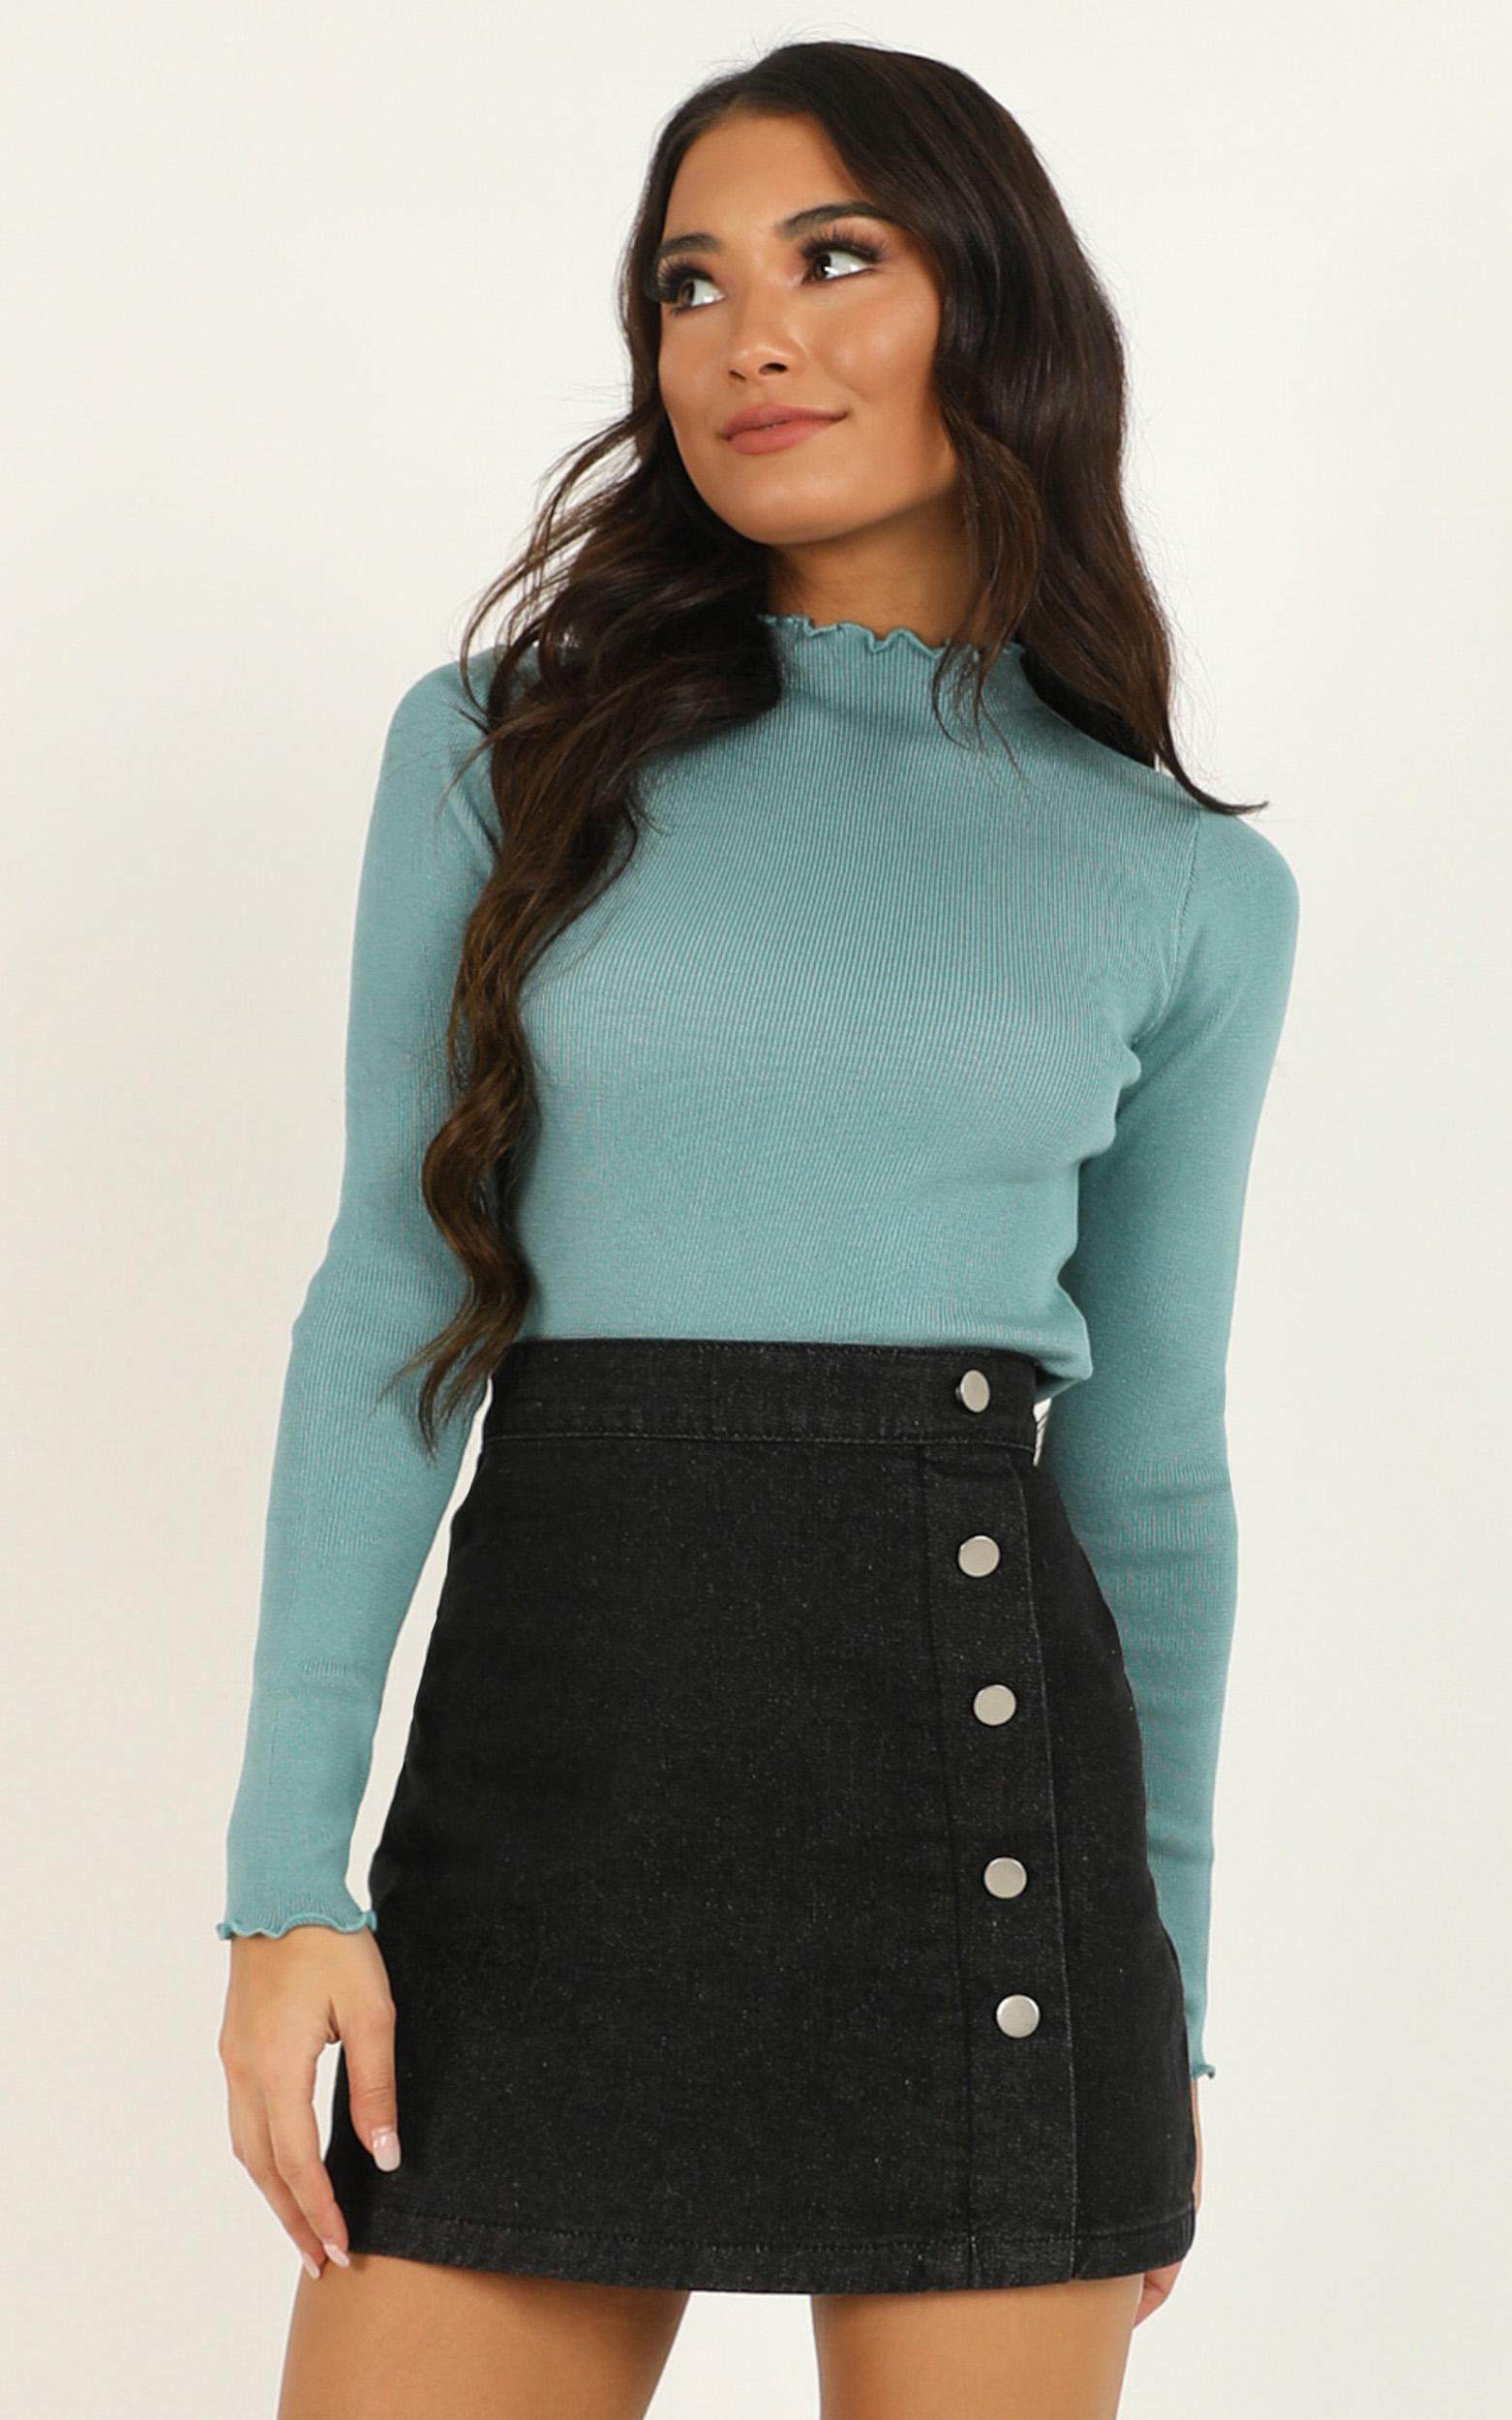 Adrenaline Junkie Knit Top in teal - 20 (XXXXL), Green, hi-res image number null